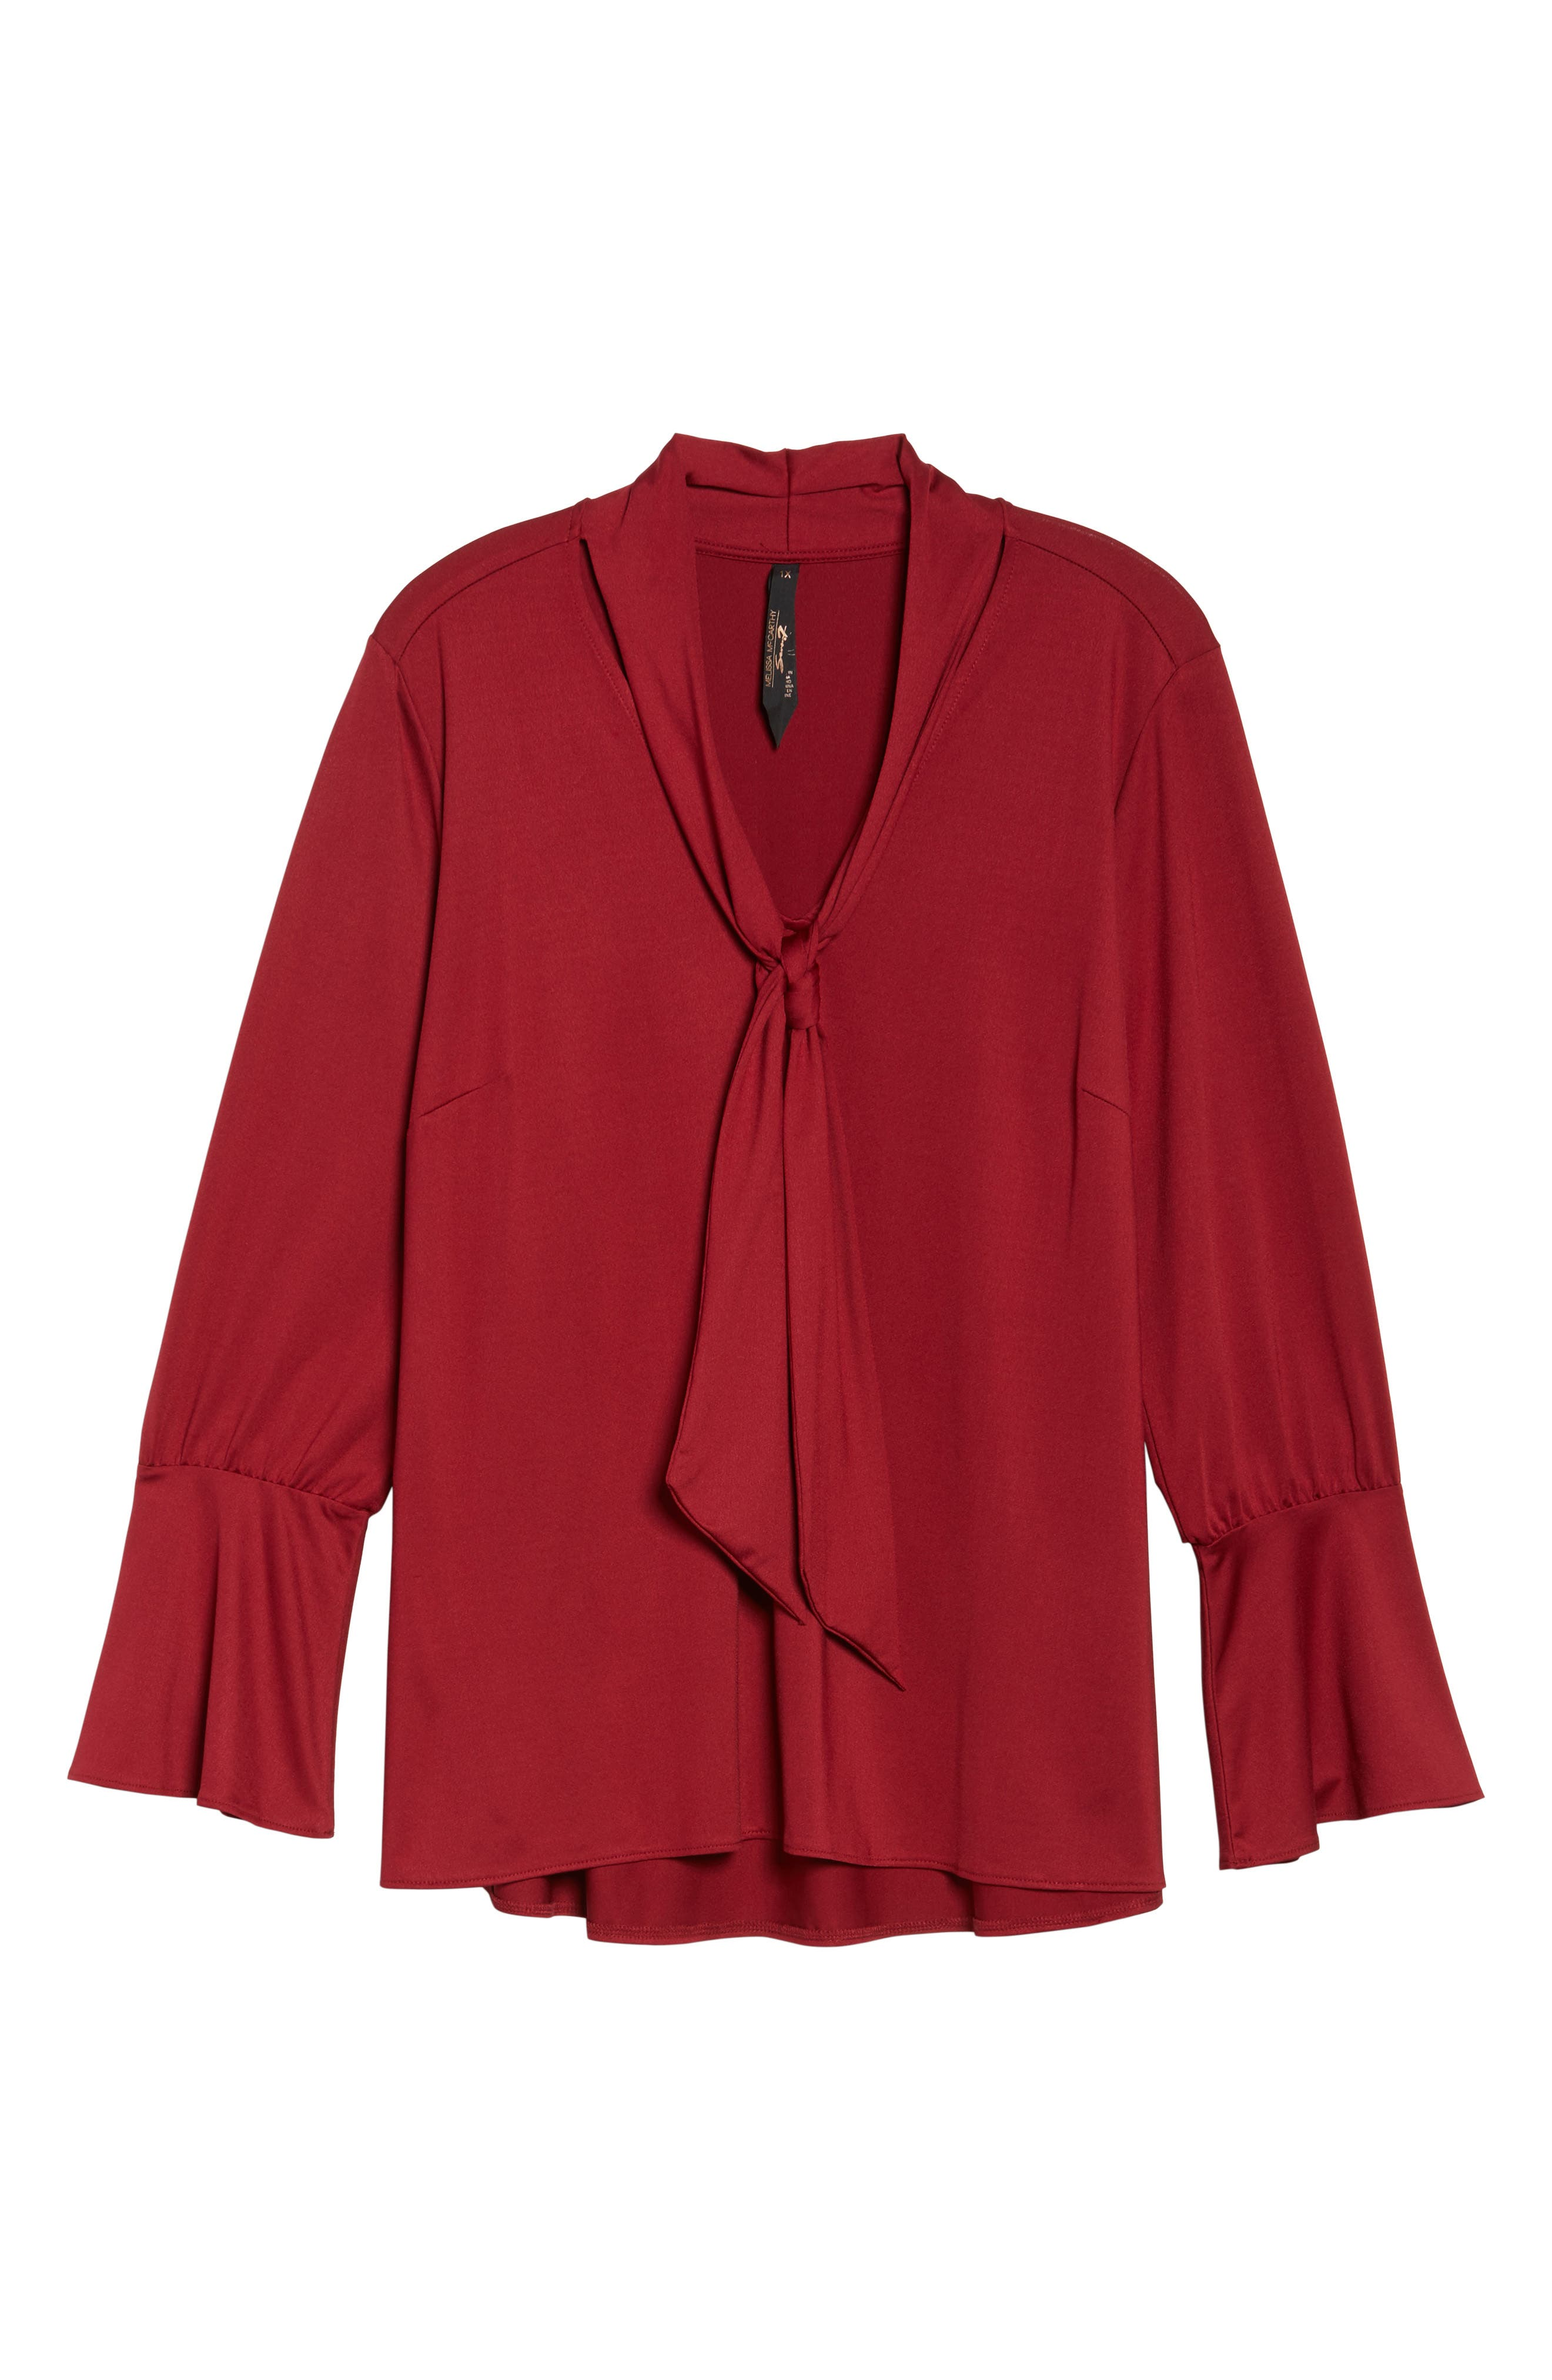 Tie Neck Top,                             Alternate thumbnail 6, color,                             Rhubarb